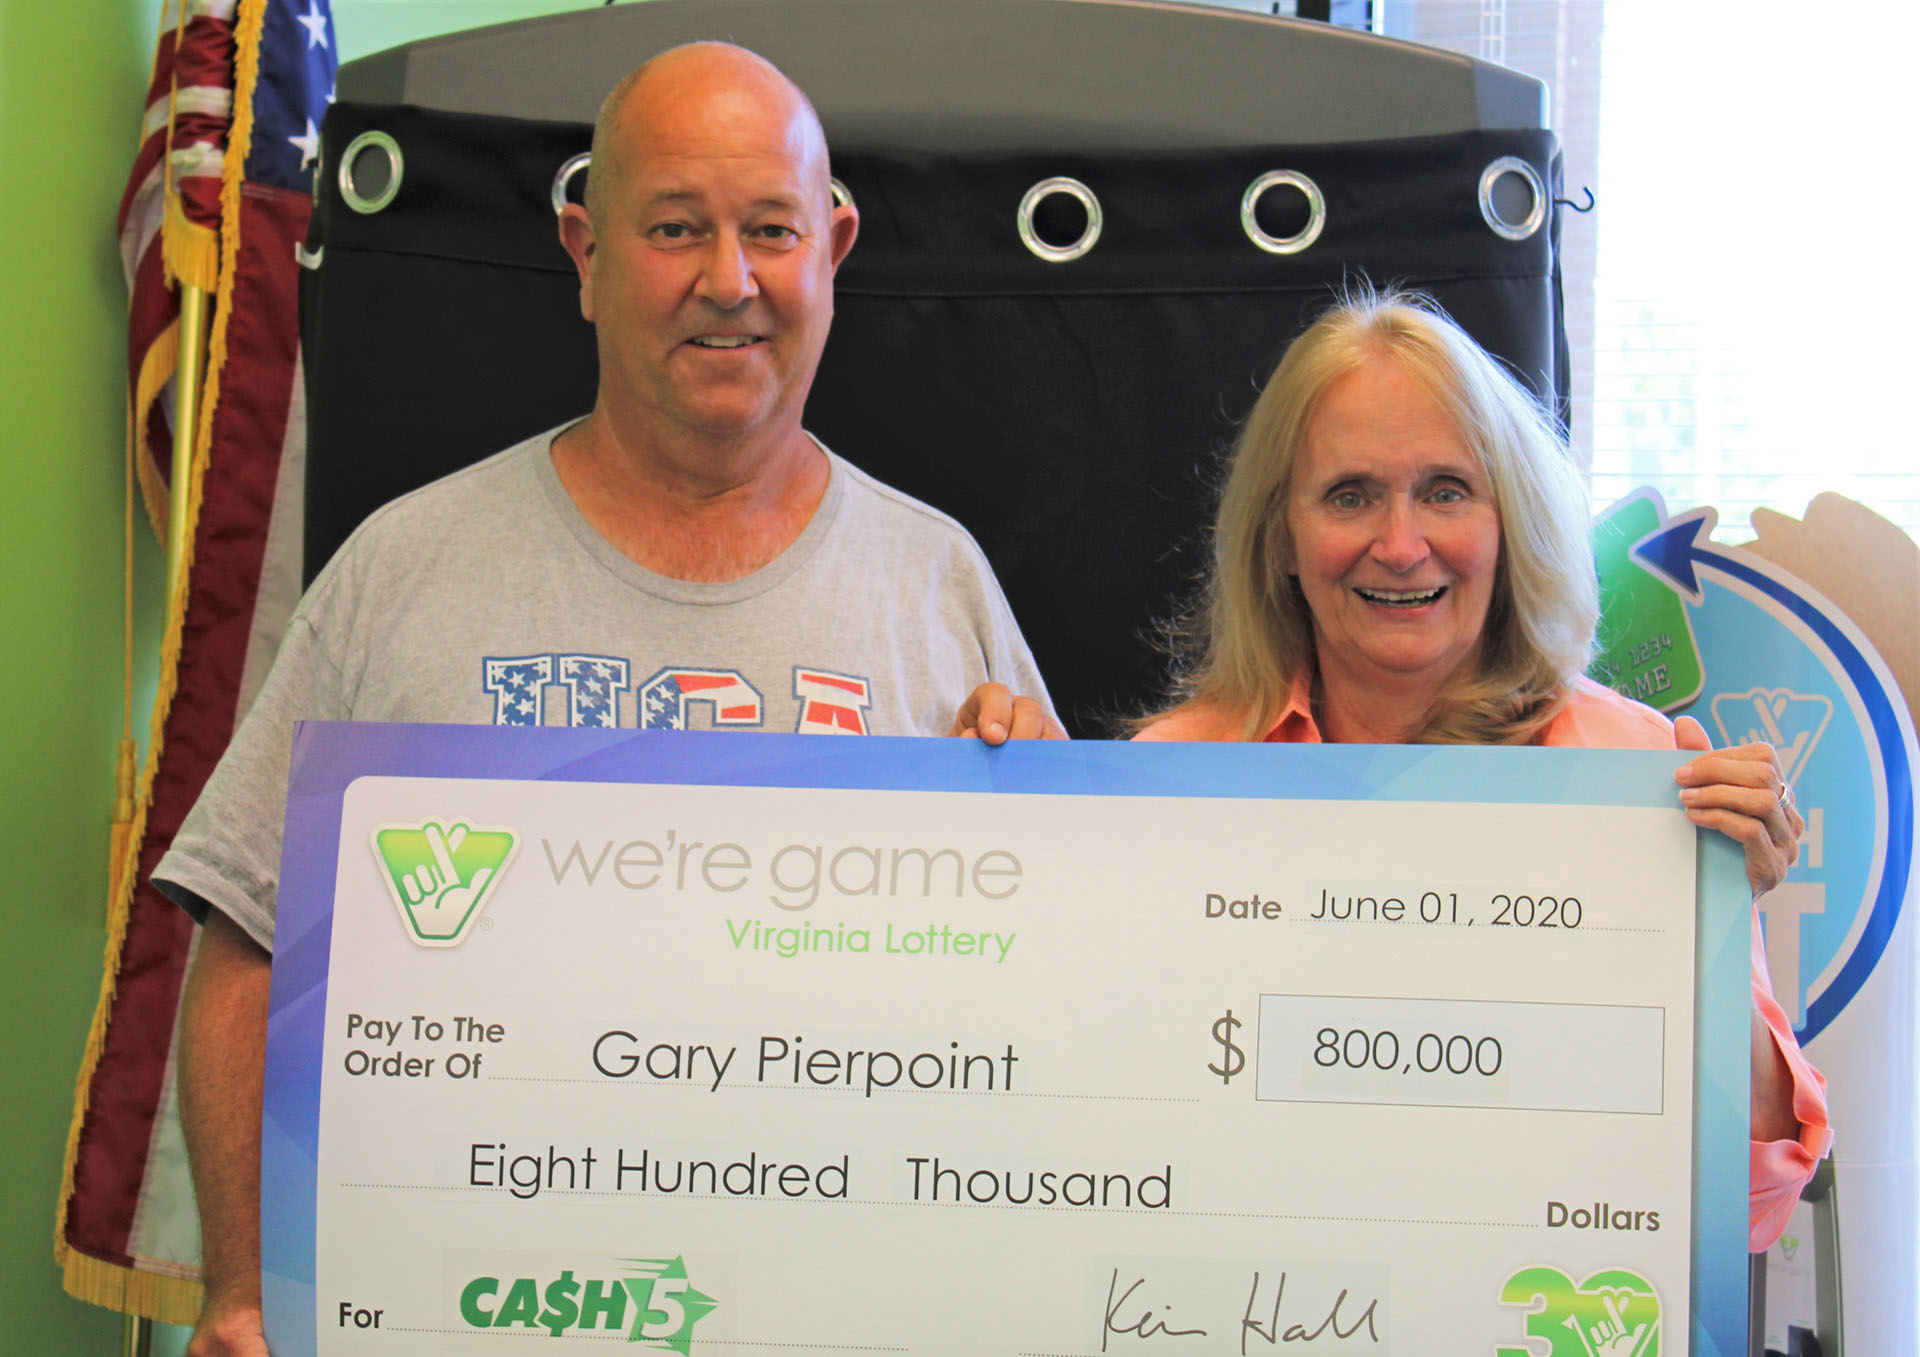 Woodbridge resident wins $800,000 from Virginia Lottery